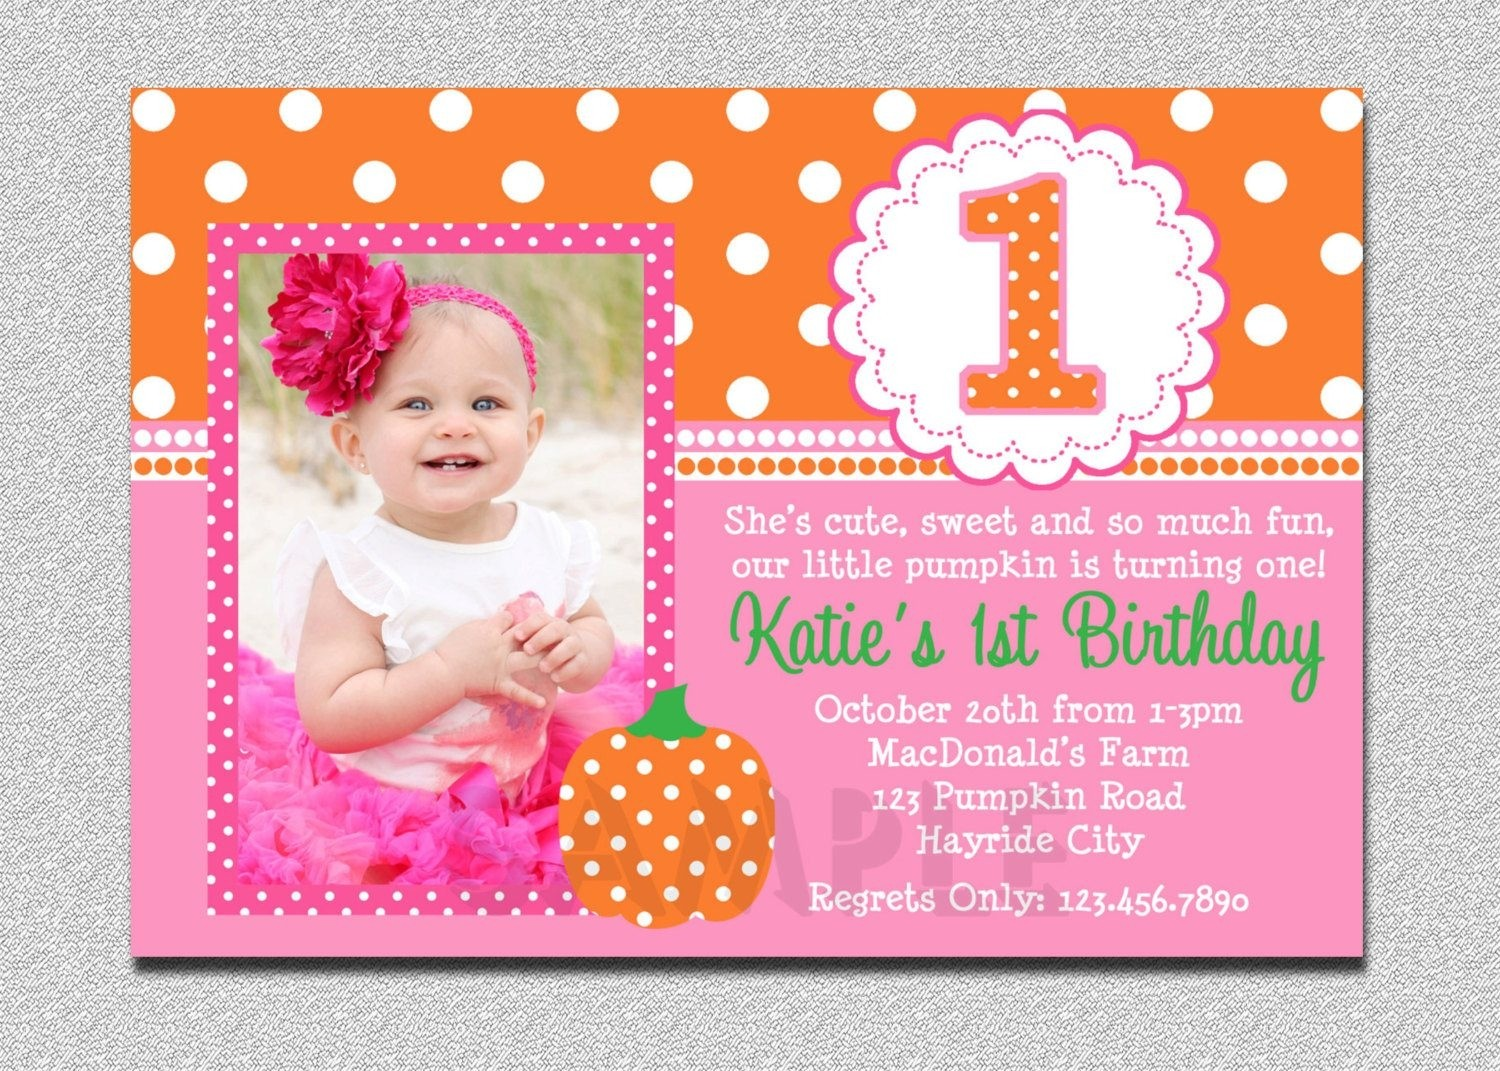 first birthday invitation card design ; invitation-card-in-birthday-party-inspirationalnew-1st-birthday-invitation-card-design-blank-for-girls-yspages-com